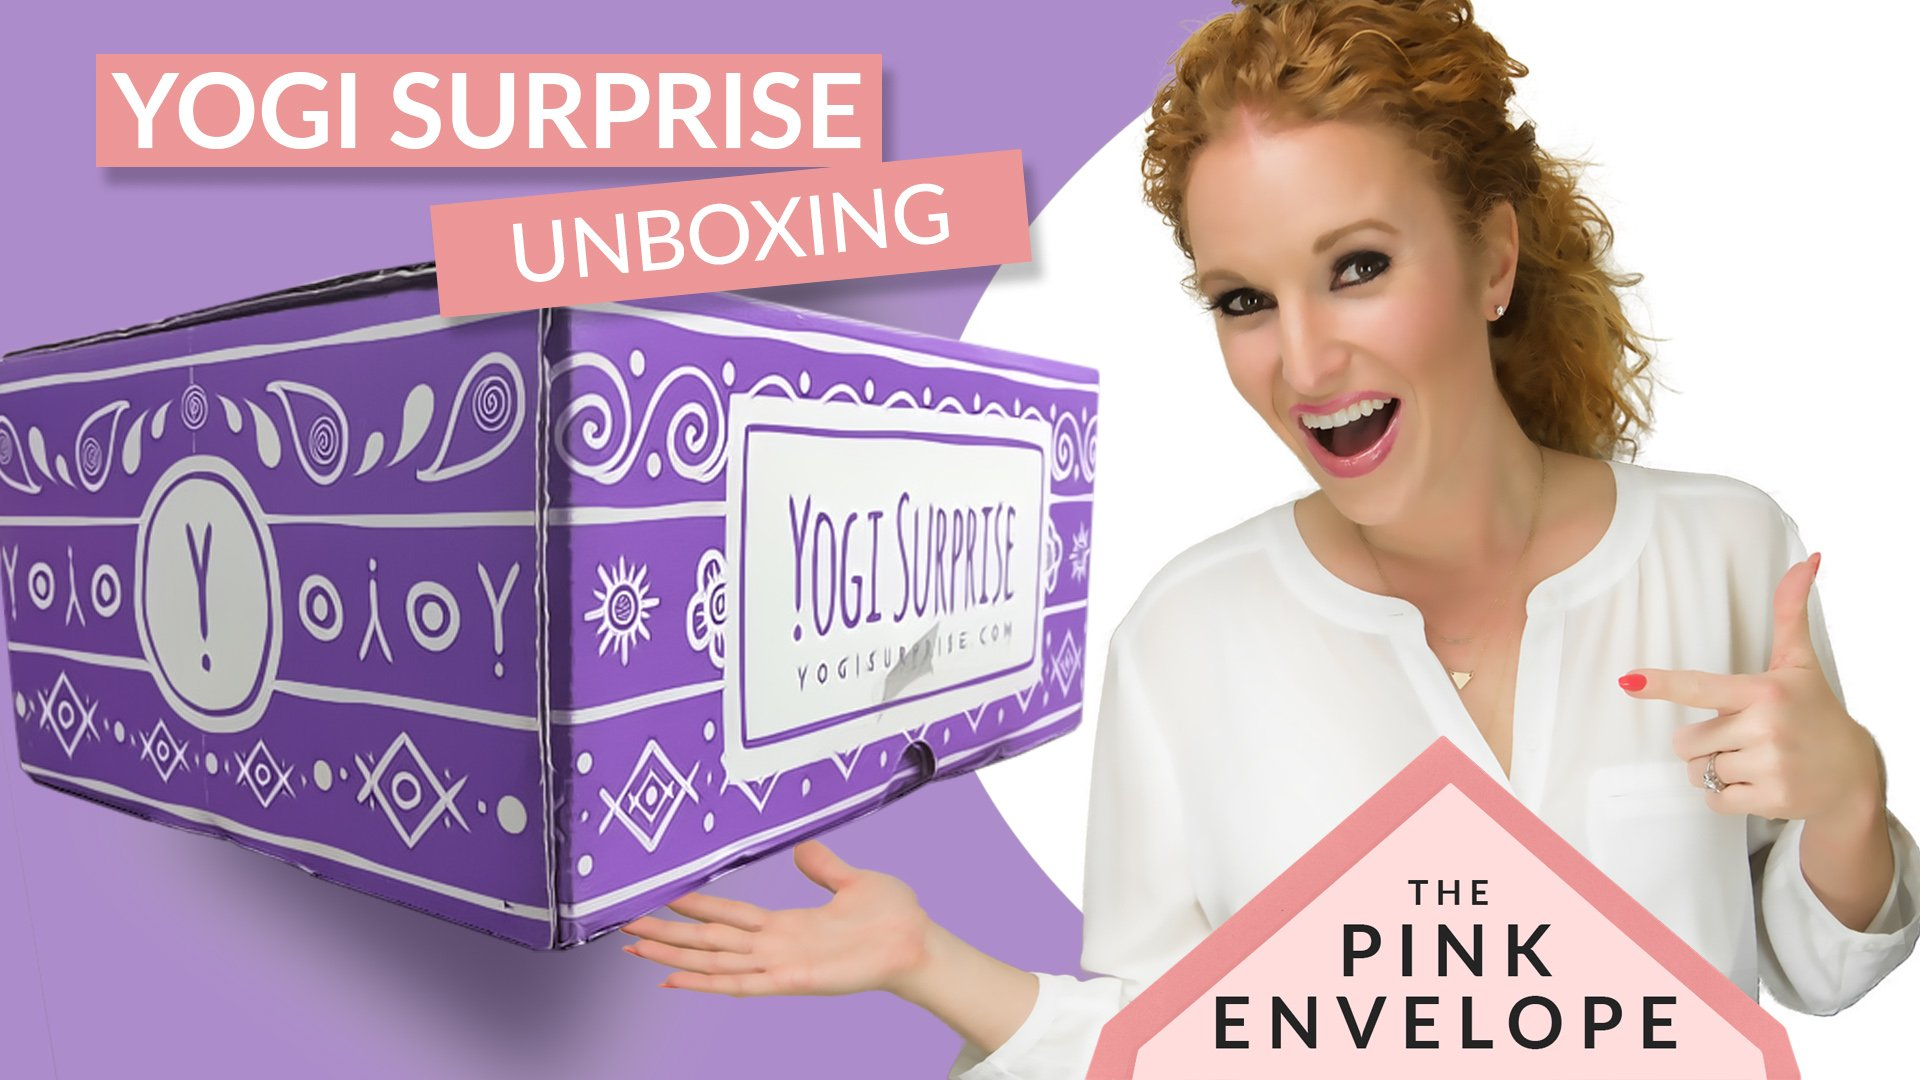 Yogi Surprise Review – Yoga Subscription Box